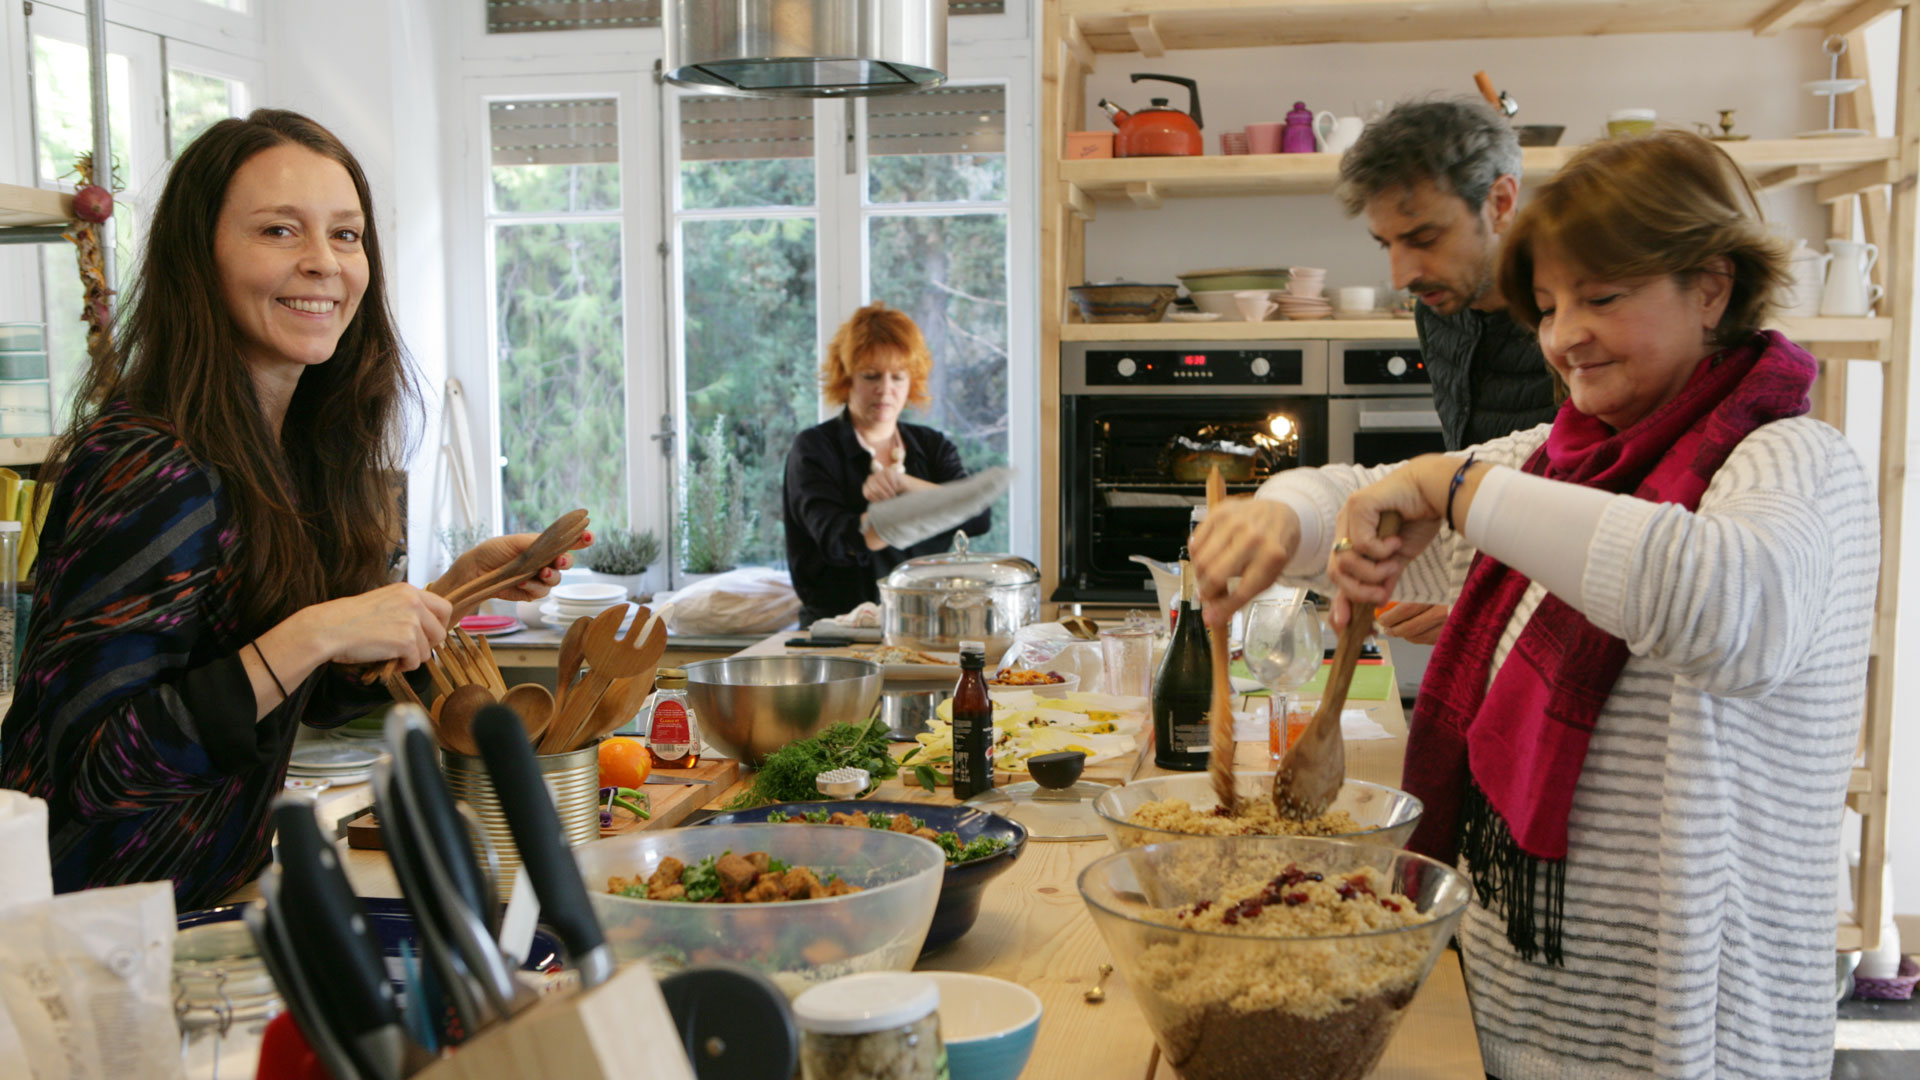 Alison Beckner from Scout Consulting cooking dinner with friends